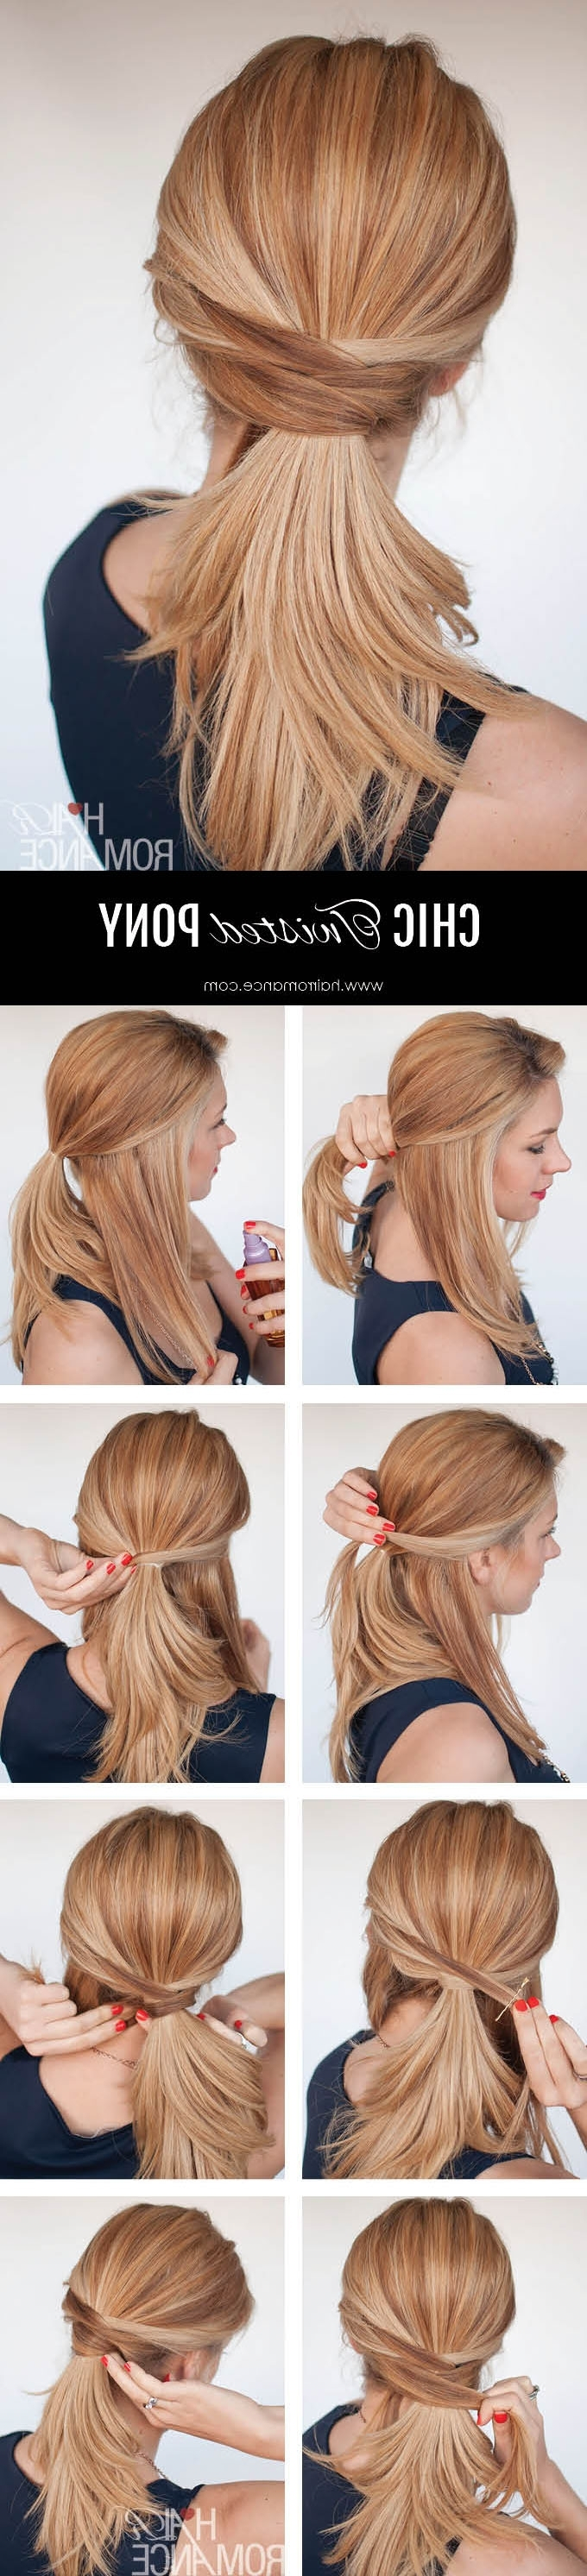 3 Chic Ponytail Tutorials To Lift Your Everyday Hair Game – Hair Romance Intended For Well Known Ponytail Hairstyles For Fine Hair (View 3 of 20)